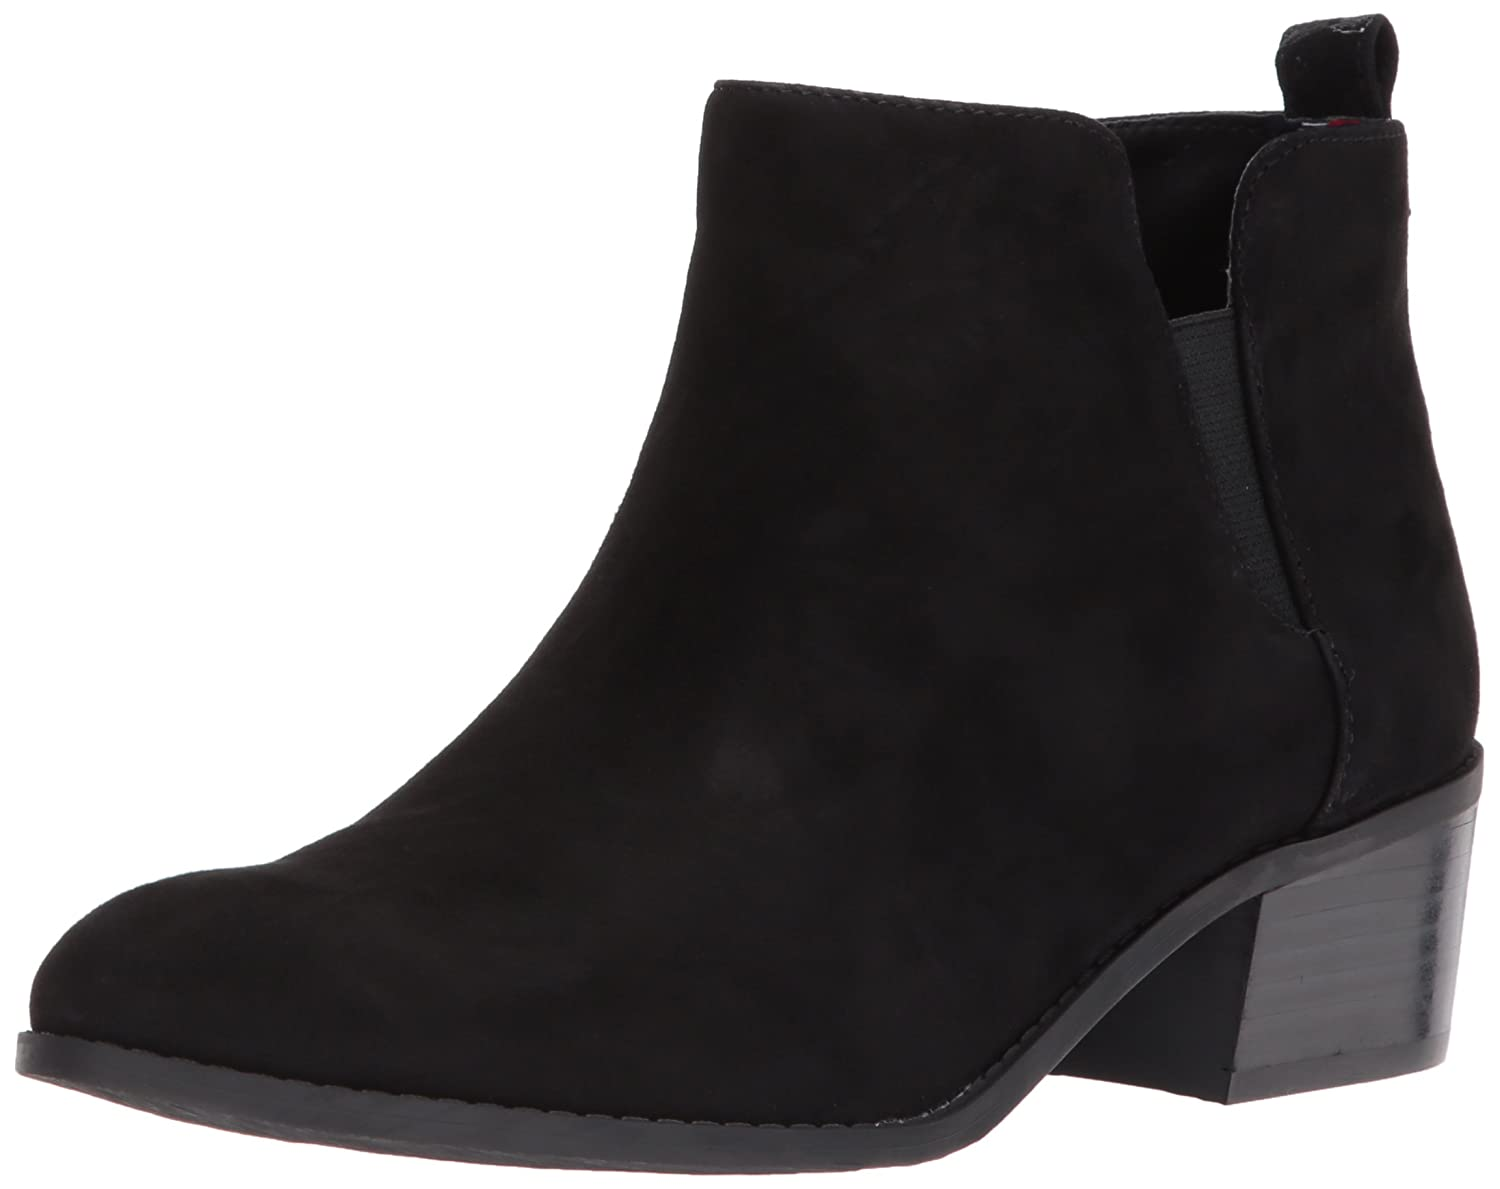 Tommy Hilfiger Women's Randall Ankle Boot B06XVK6S8T 8.5 B(M) US|Black